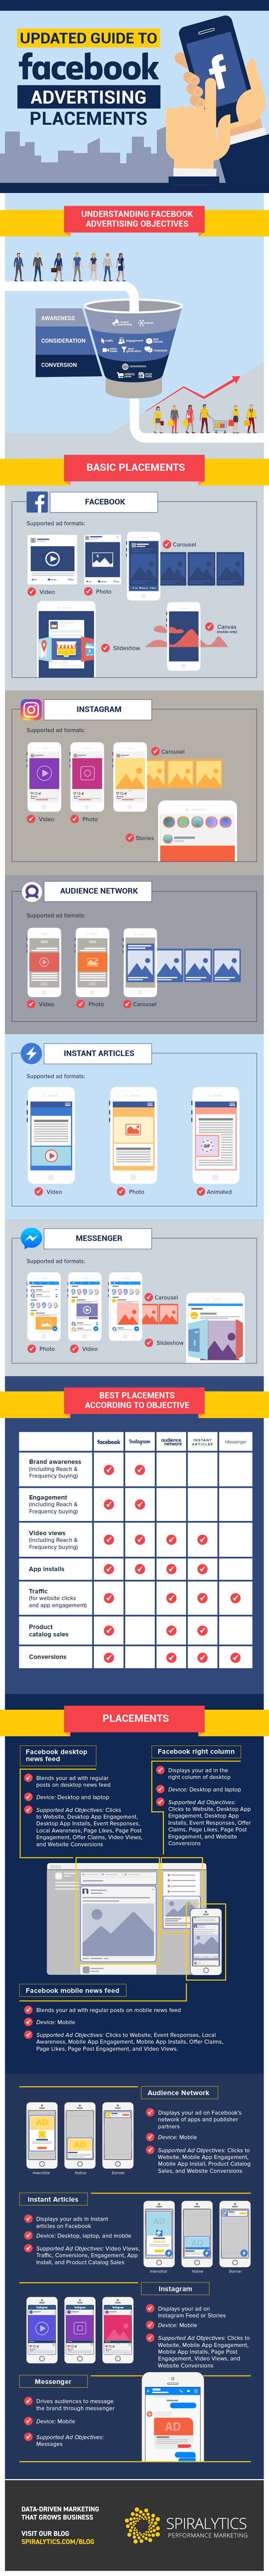 An Updated Guide to Facebook Advertising Placements [Infographic] | Social Media Today